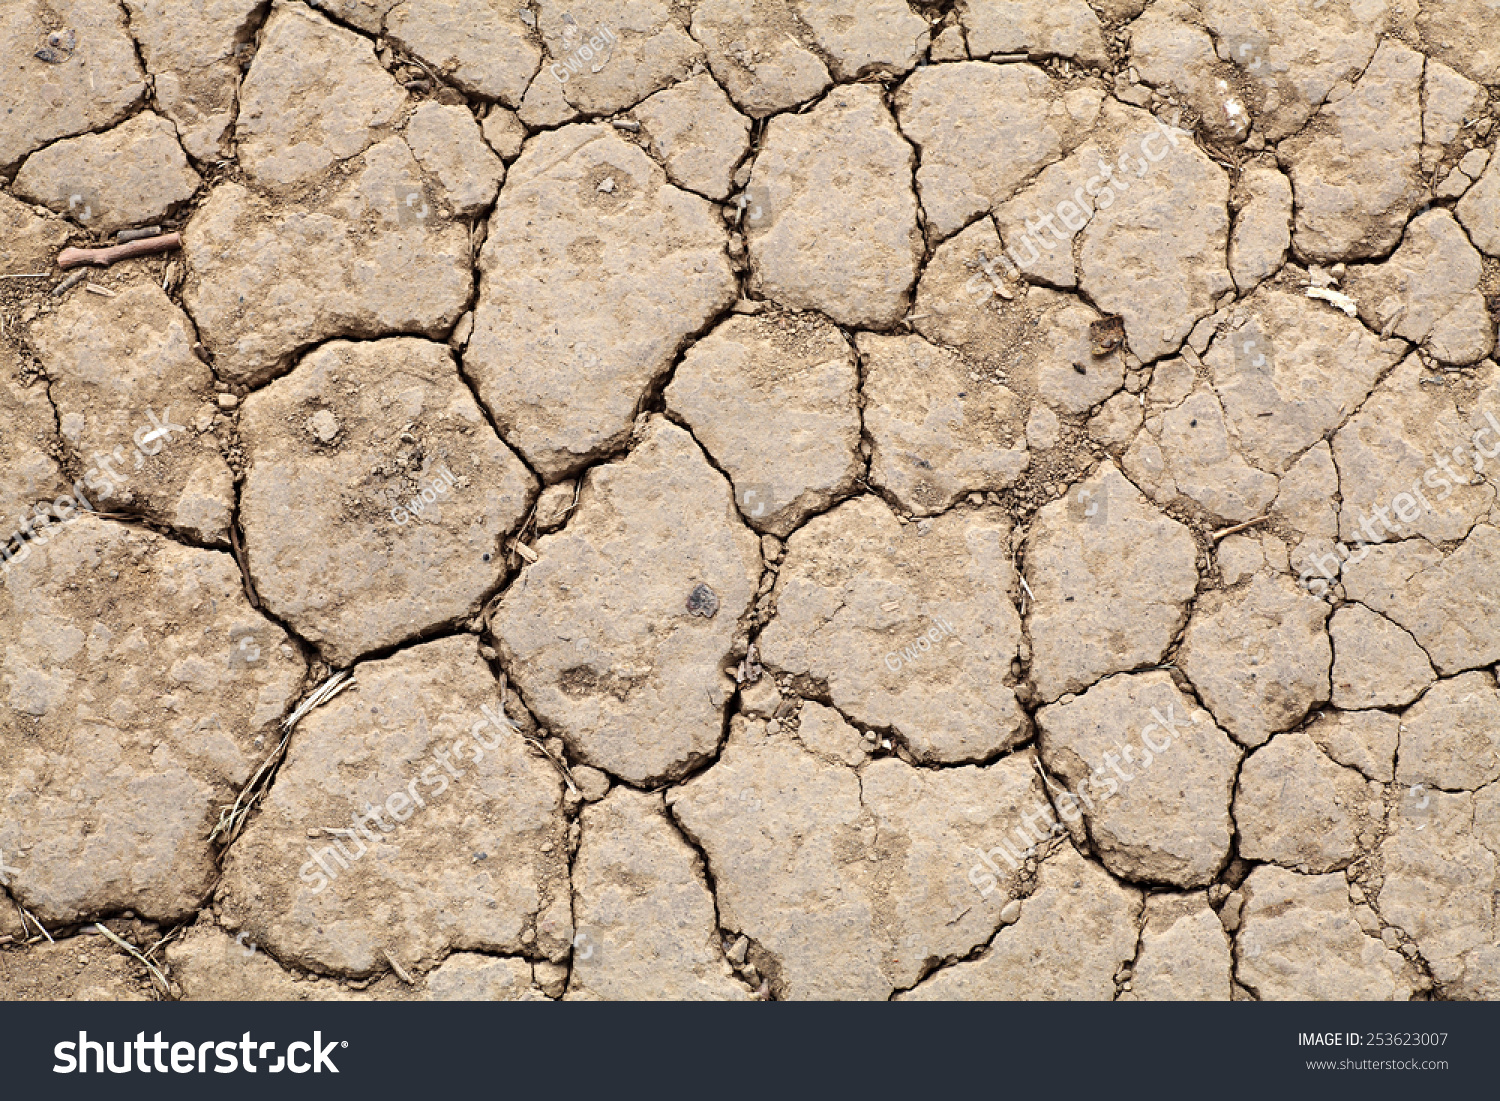 Facade cracking dried reddish laterite dirt stock photo 253623007 facade of a cracking dried reddish laterite dirt erosion surface for textural background sciox Images